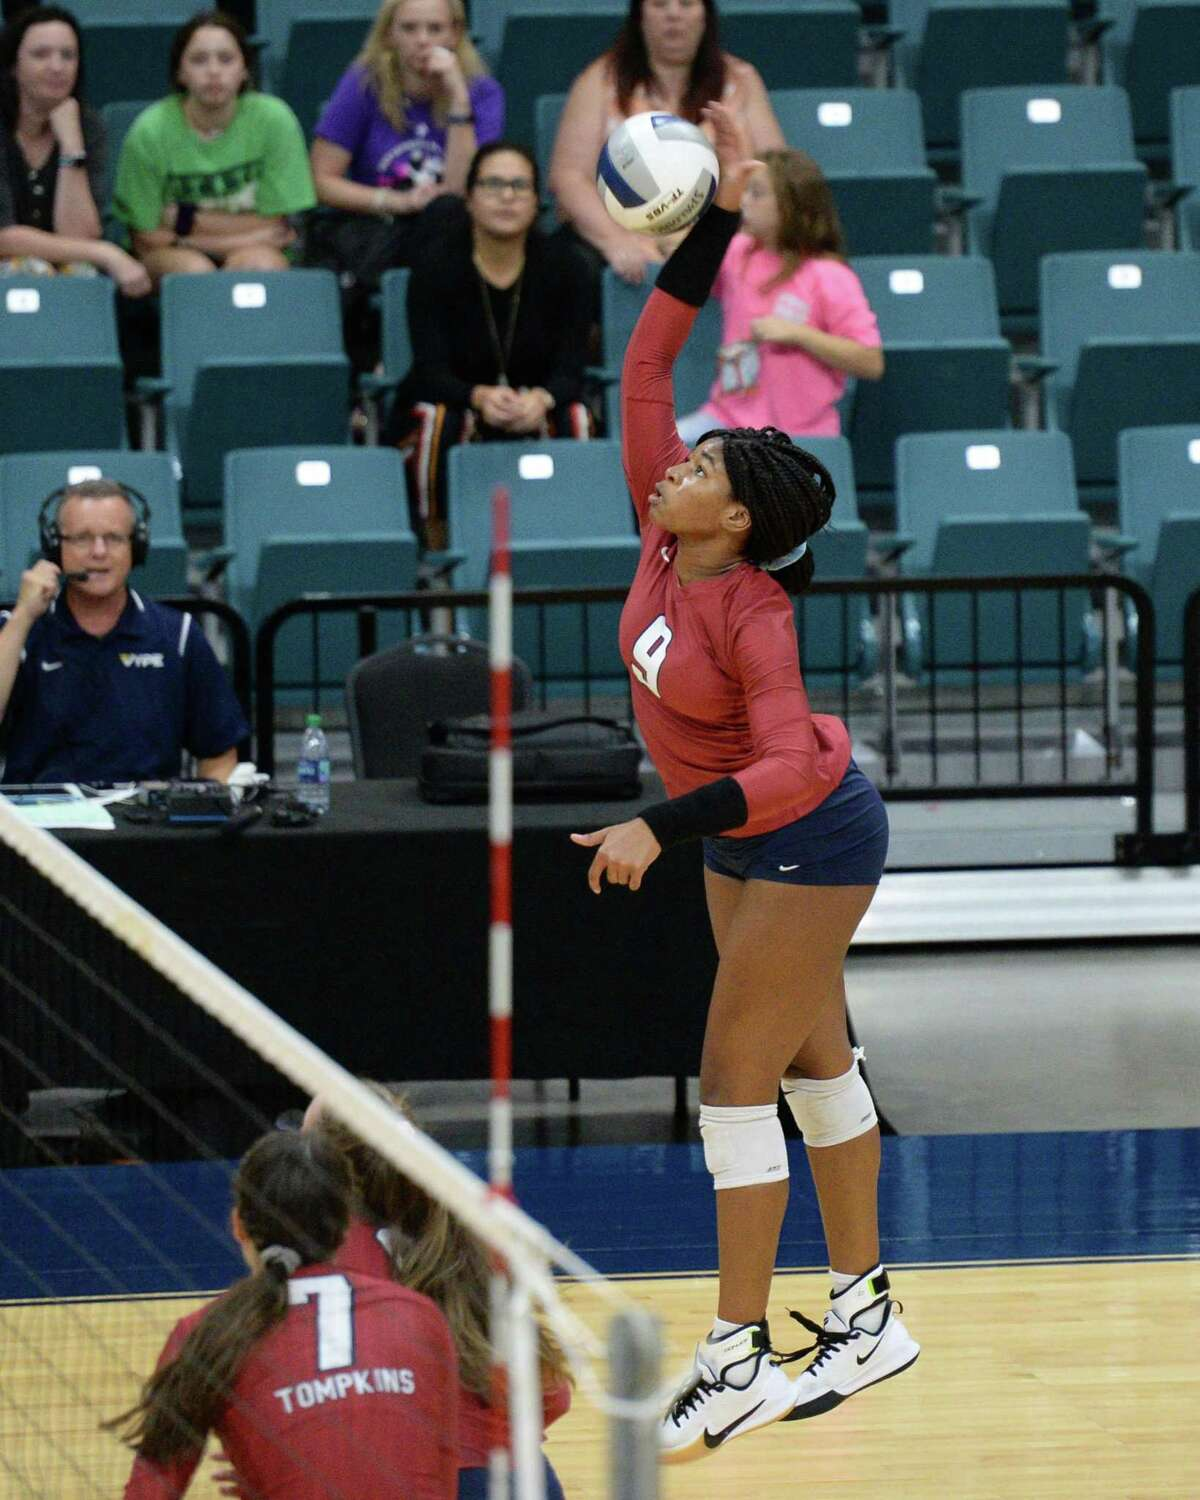 Tendai Titley (9) of Tompkins hits a shot during the second set of a Class 6A Region III bi-district volleyball playoff match between the Tompkins Falcons and the Ridge Point Panthers on Tuesday, November 5, 2019 at the Leonard Merrell Center, Katy, TX.